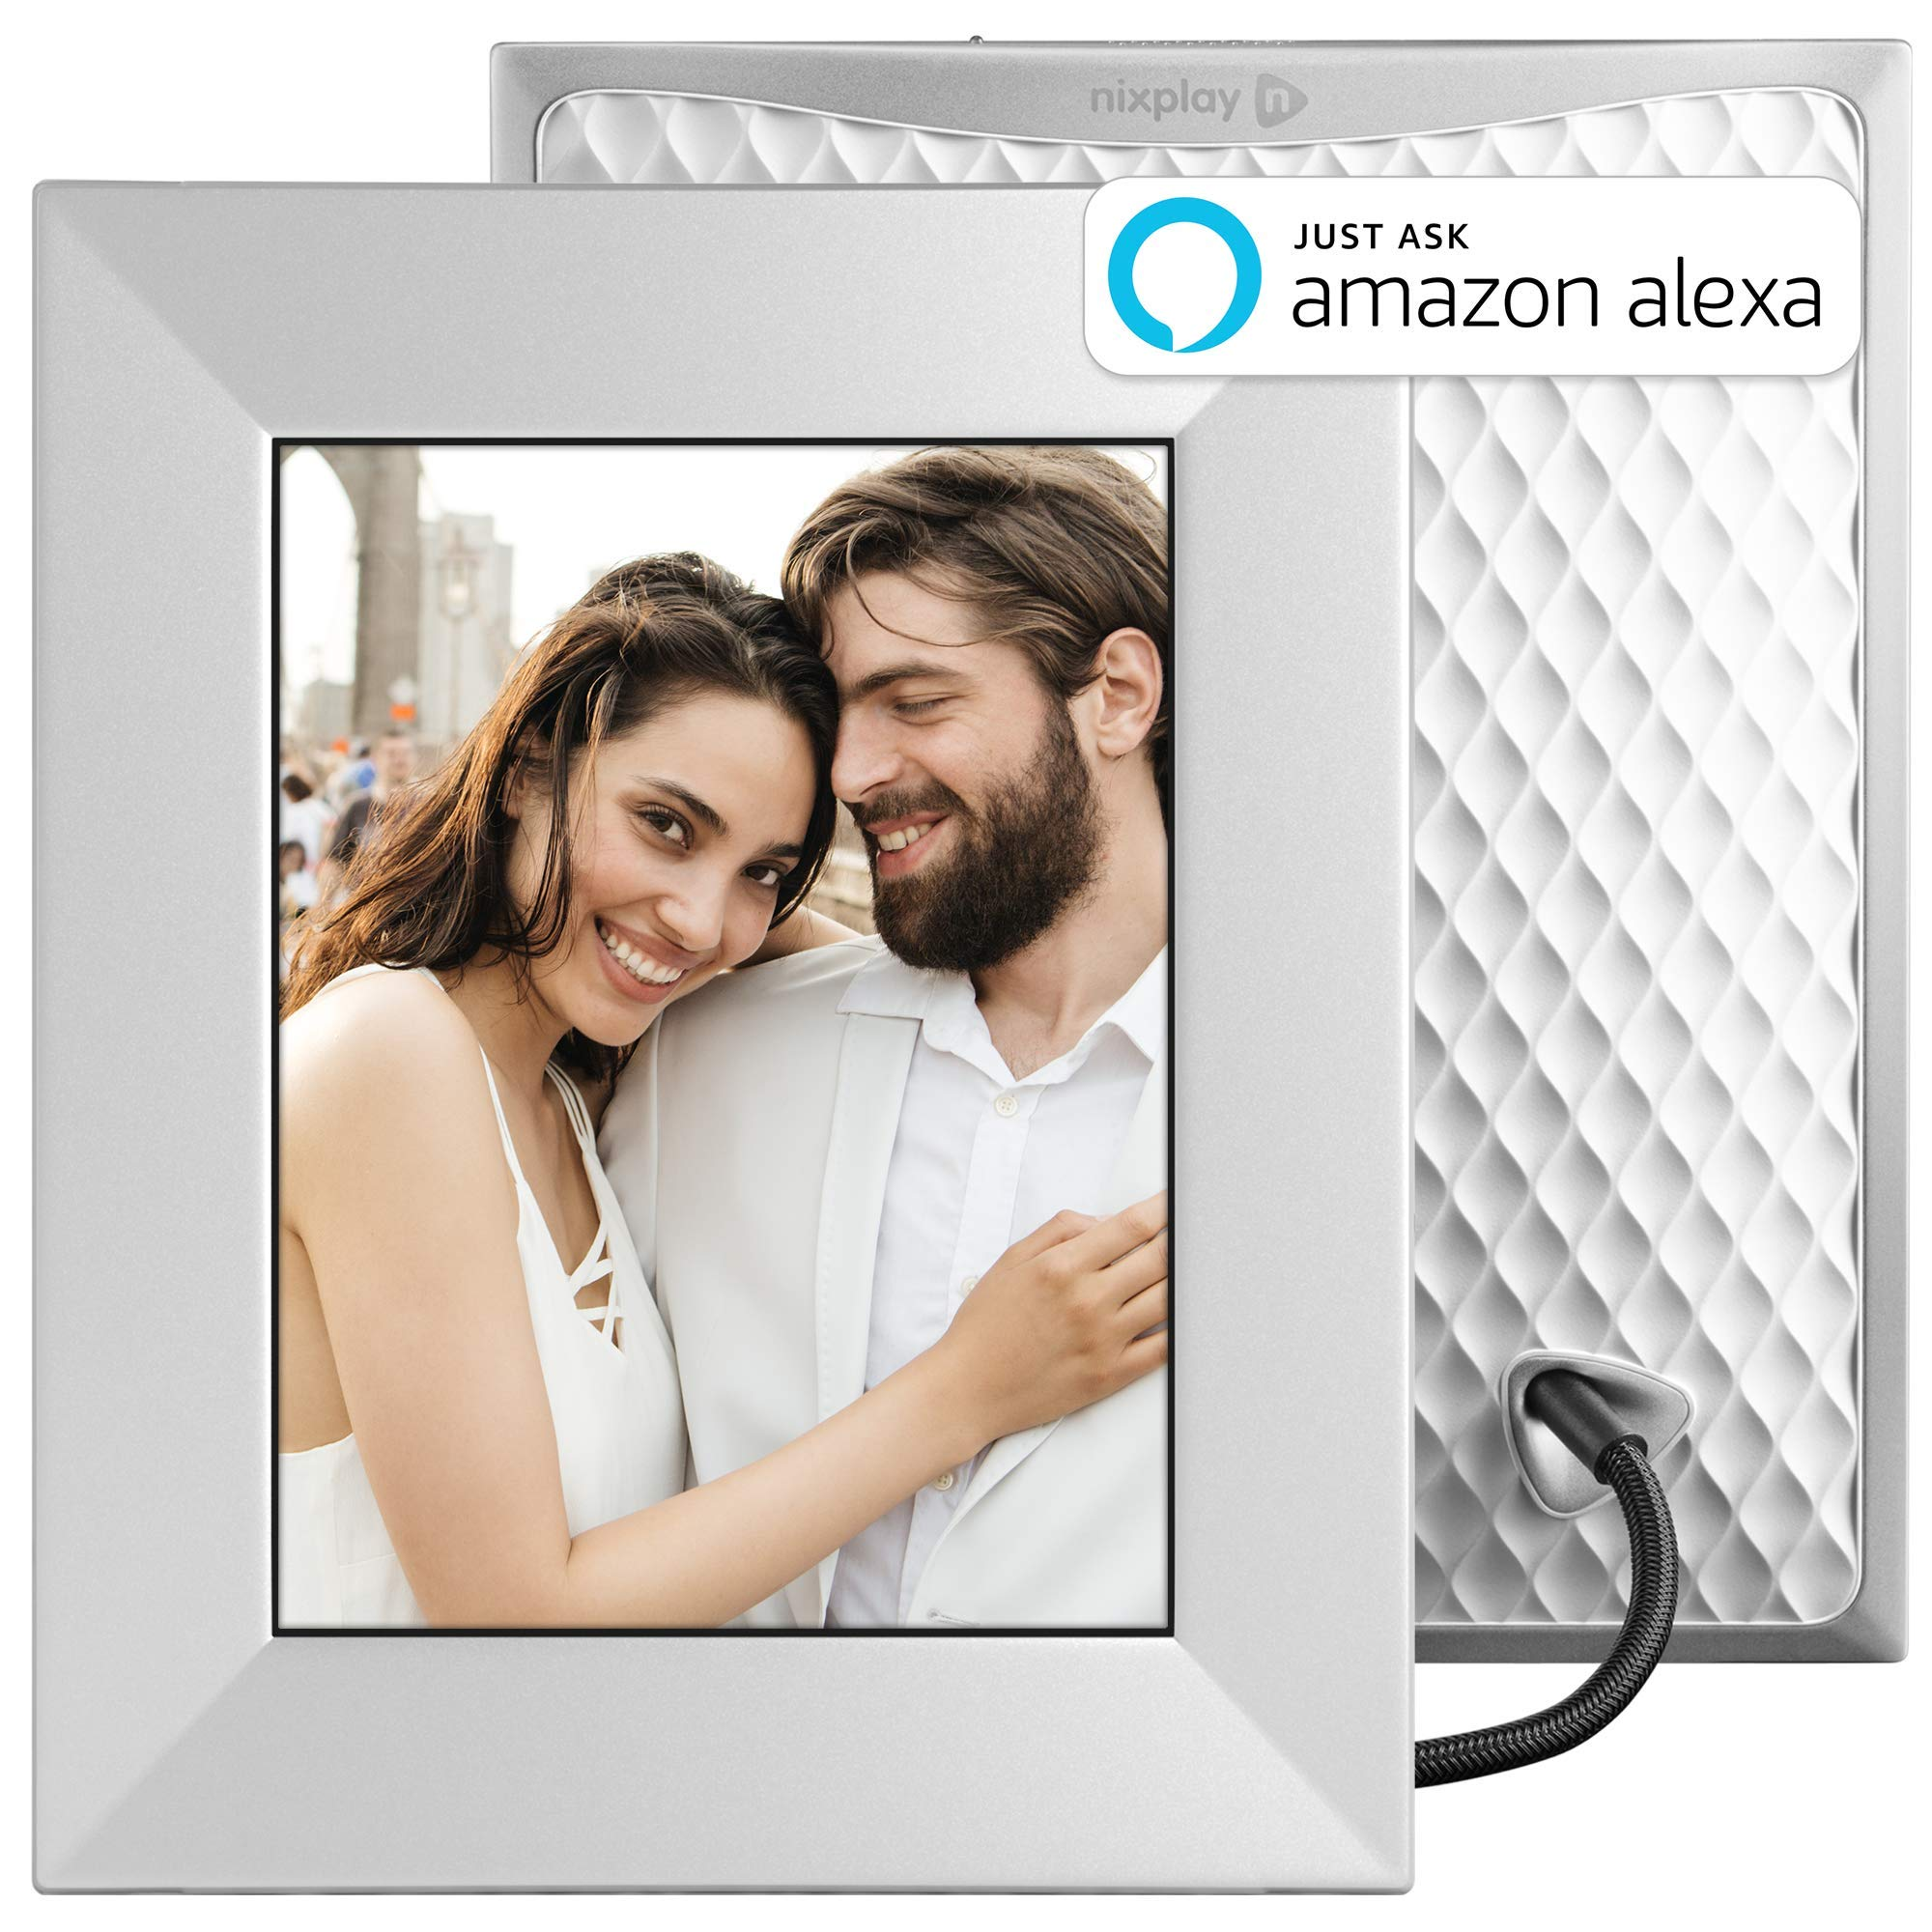 Nixplay Iris 8 Inch Digital Wifi Photo Frame W08E Silver - Digital Picture Frame with IPS Display, Motion Sensor and 10GB Online Storage, Display and Share Photos with Friends via Nixplay Mobile App by nixplay